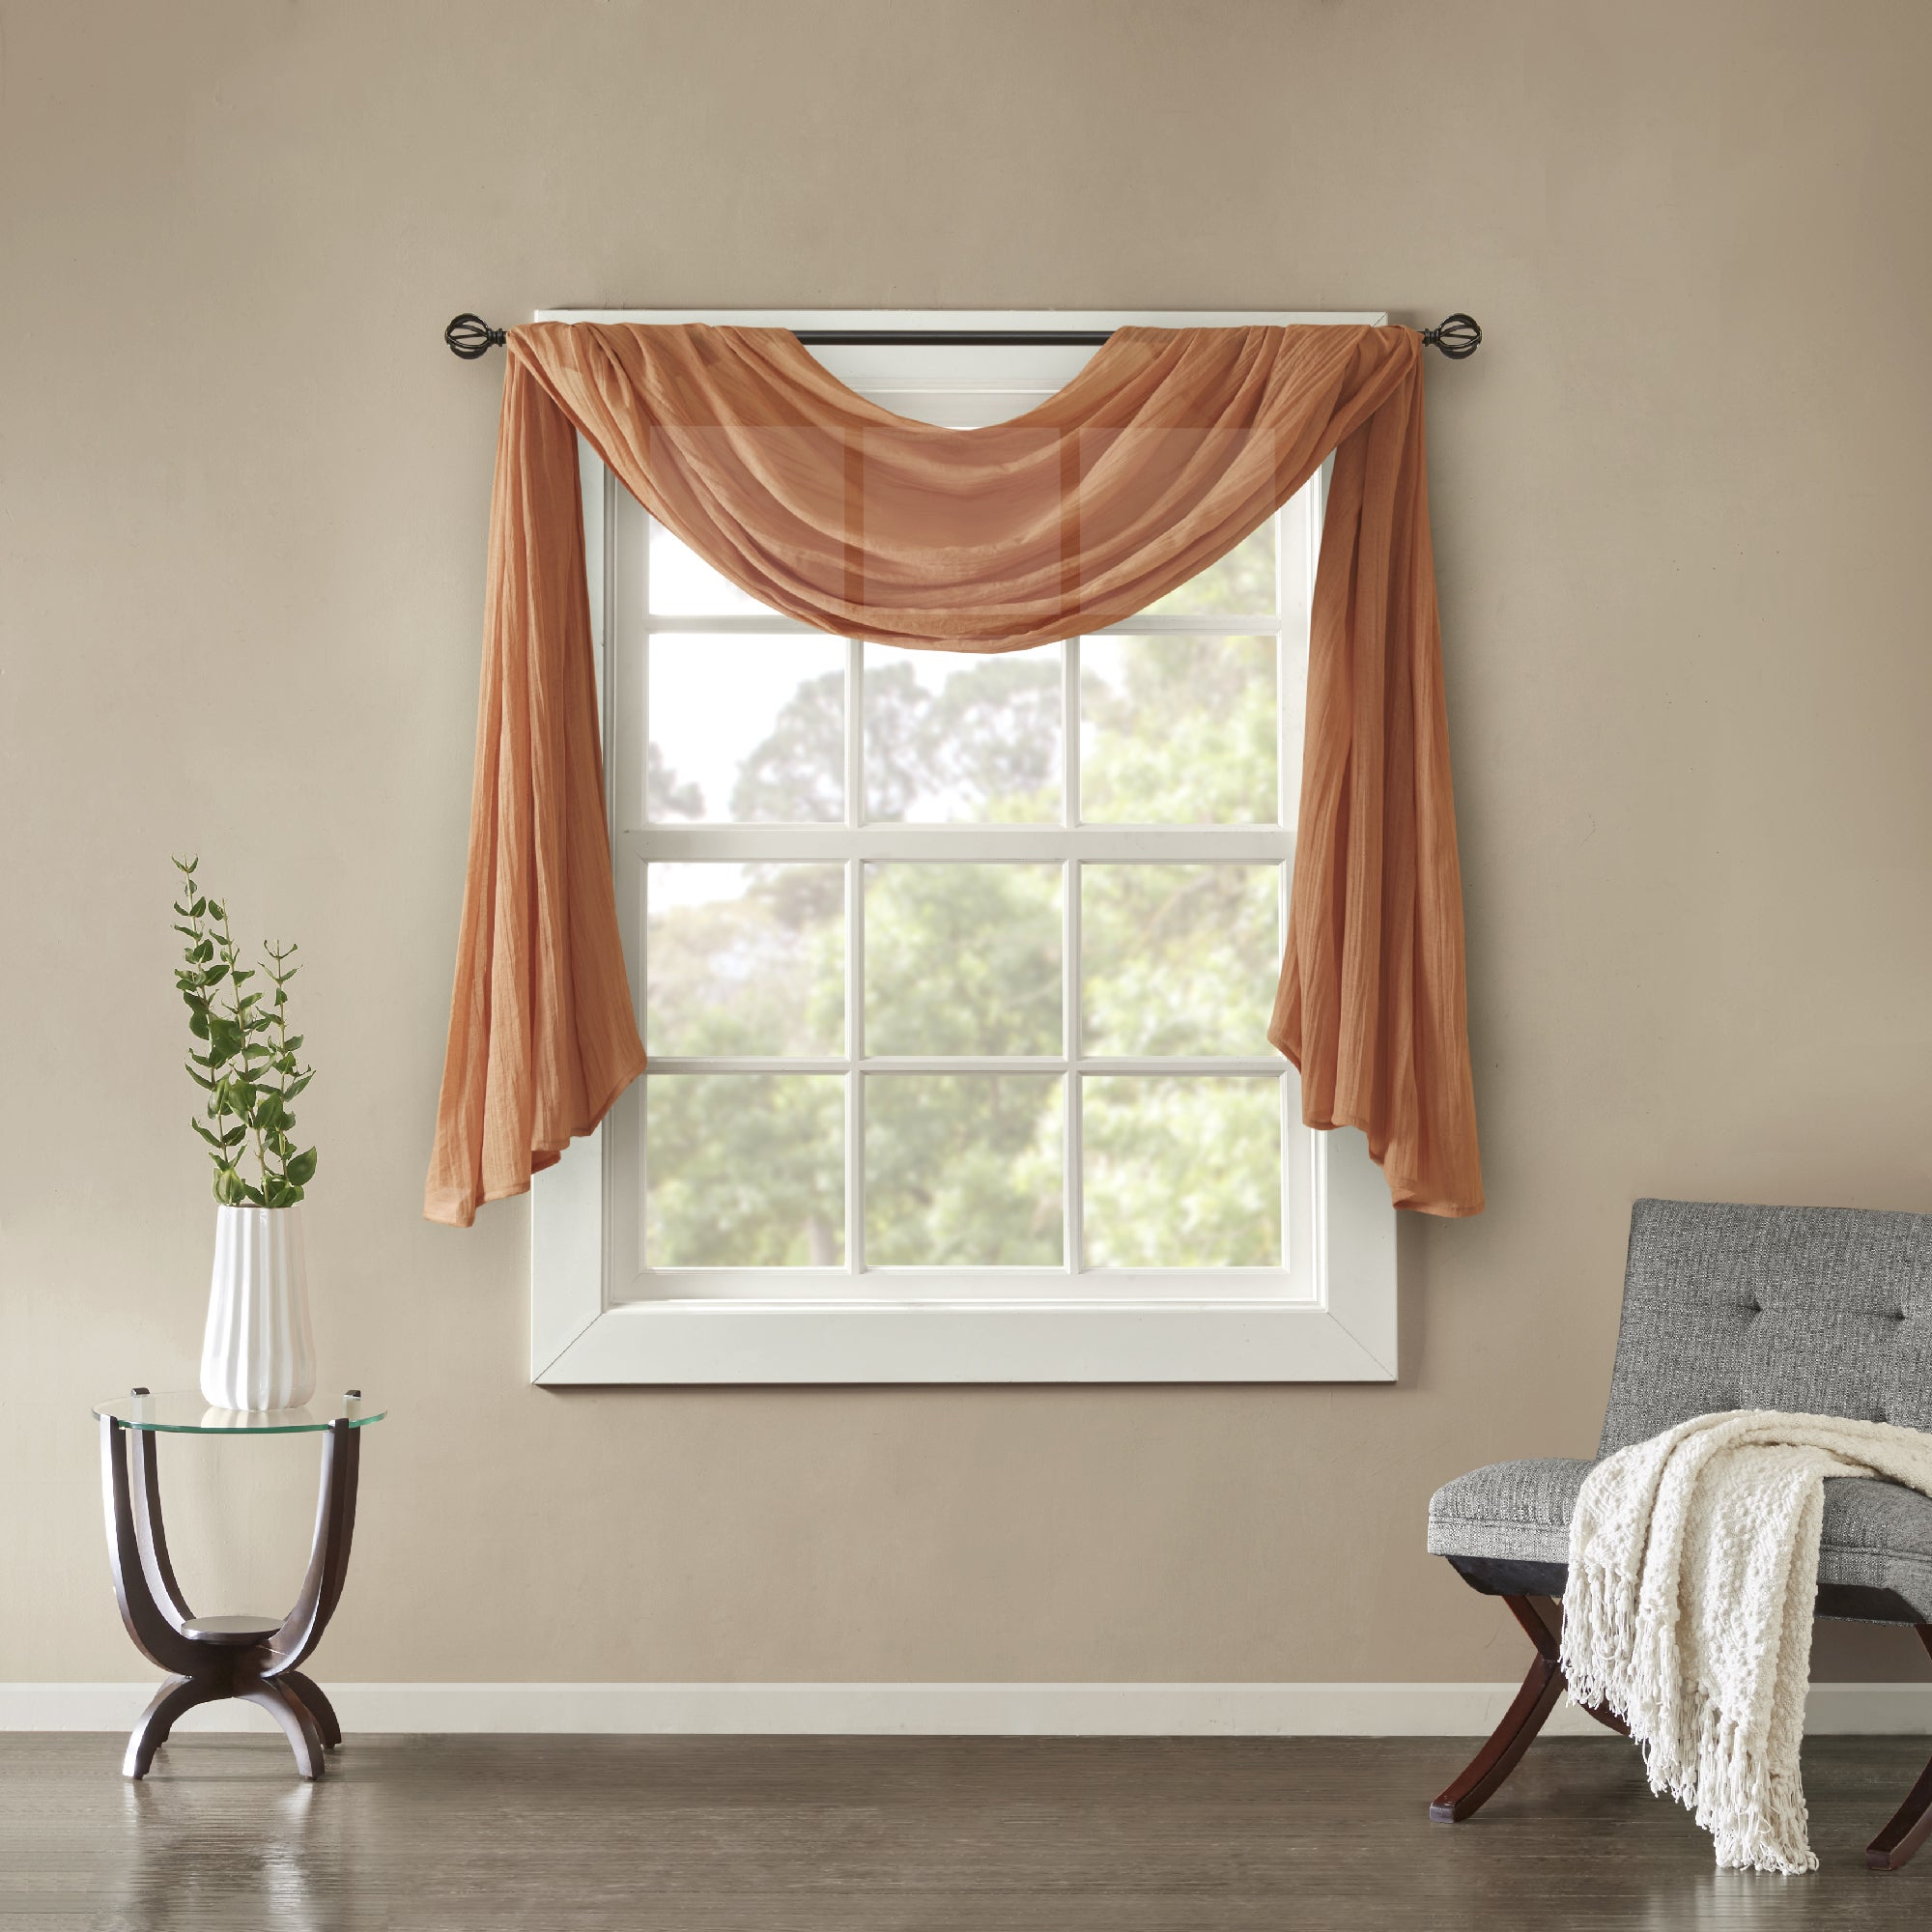 Buy orange valances online at overstock com our best window treatments deals